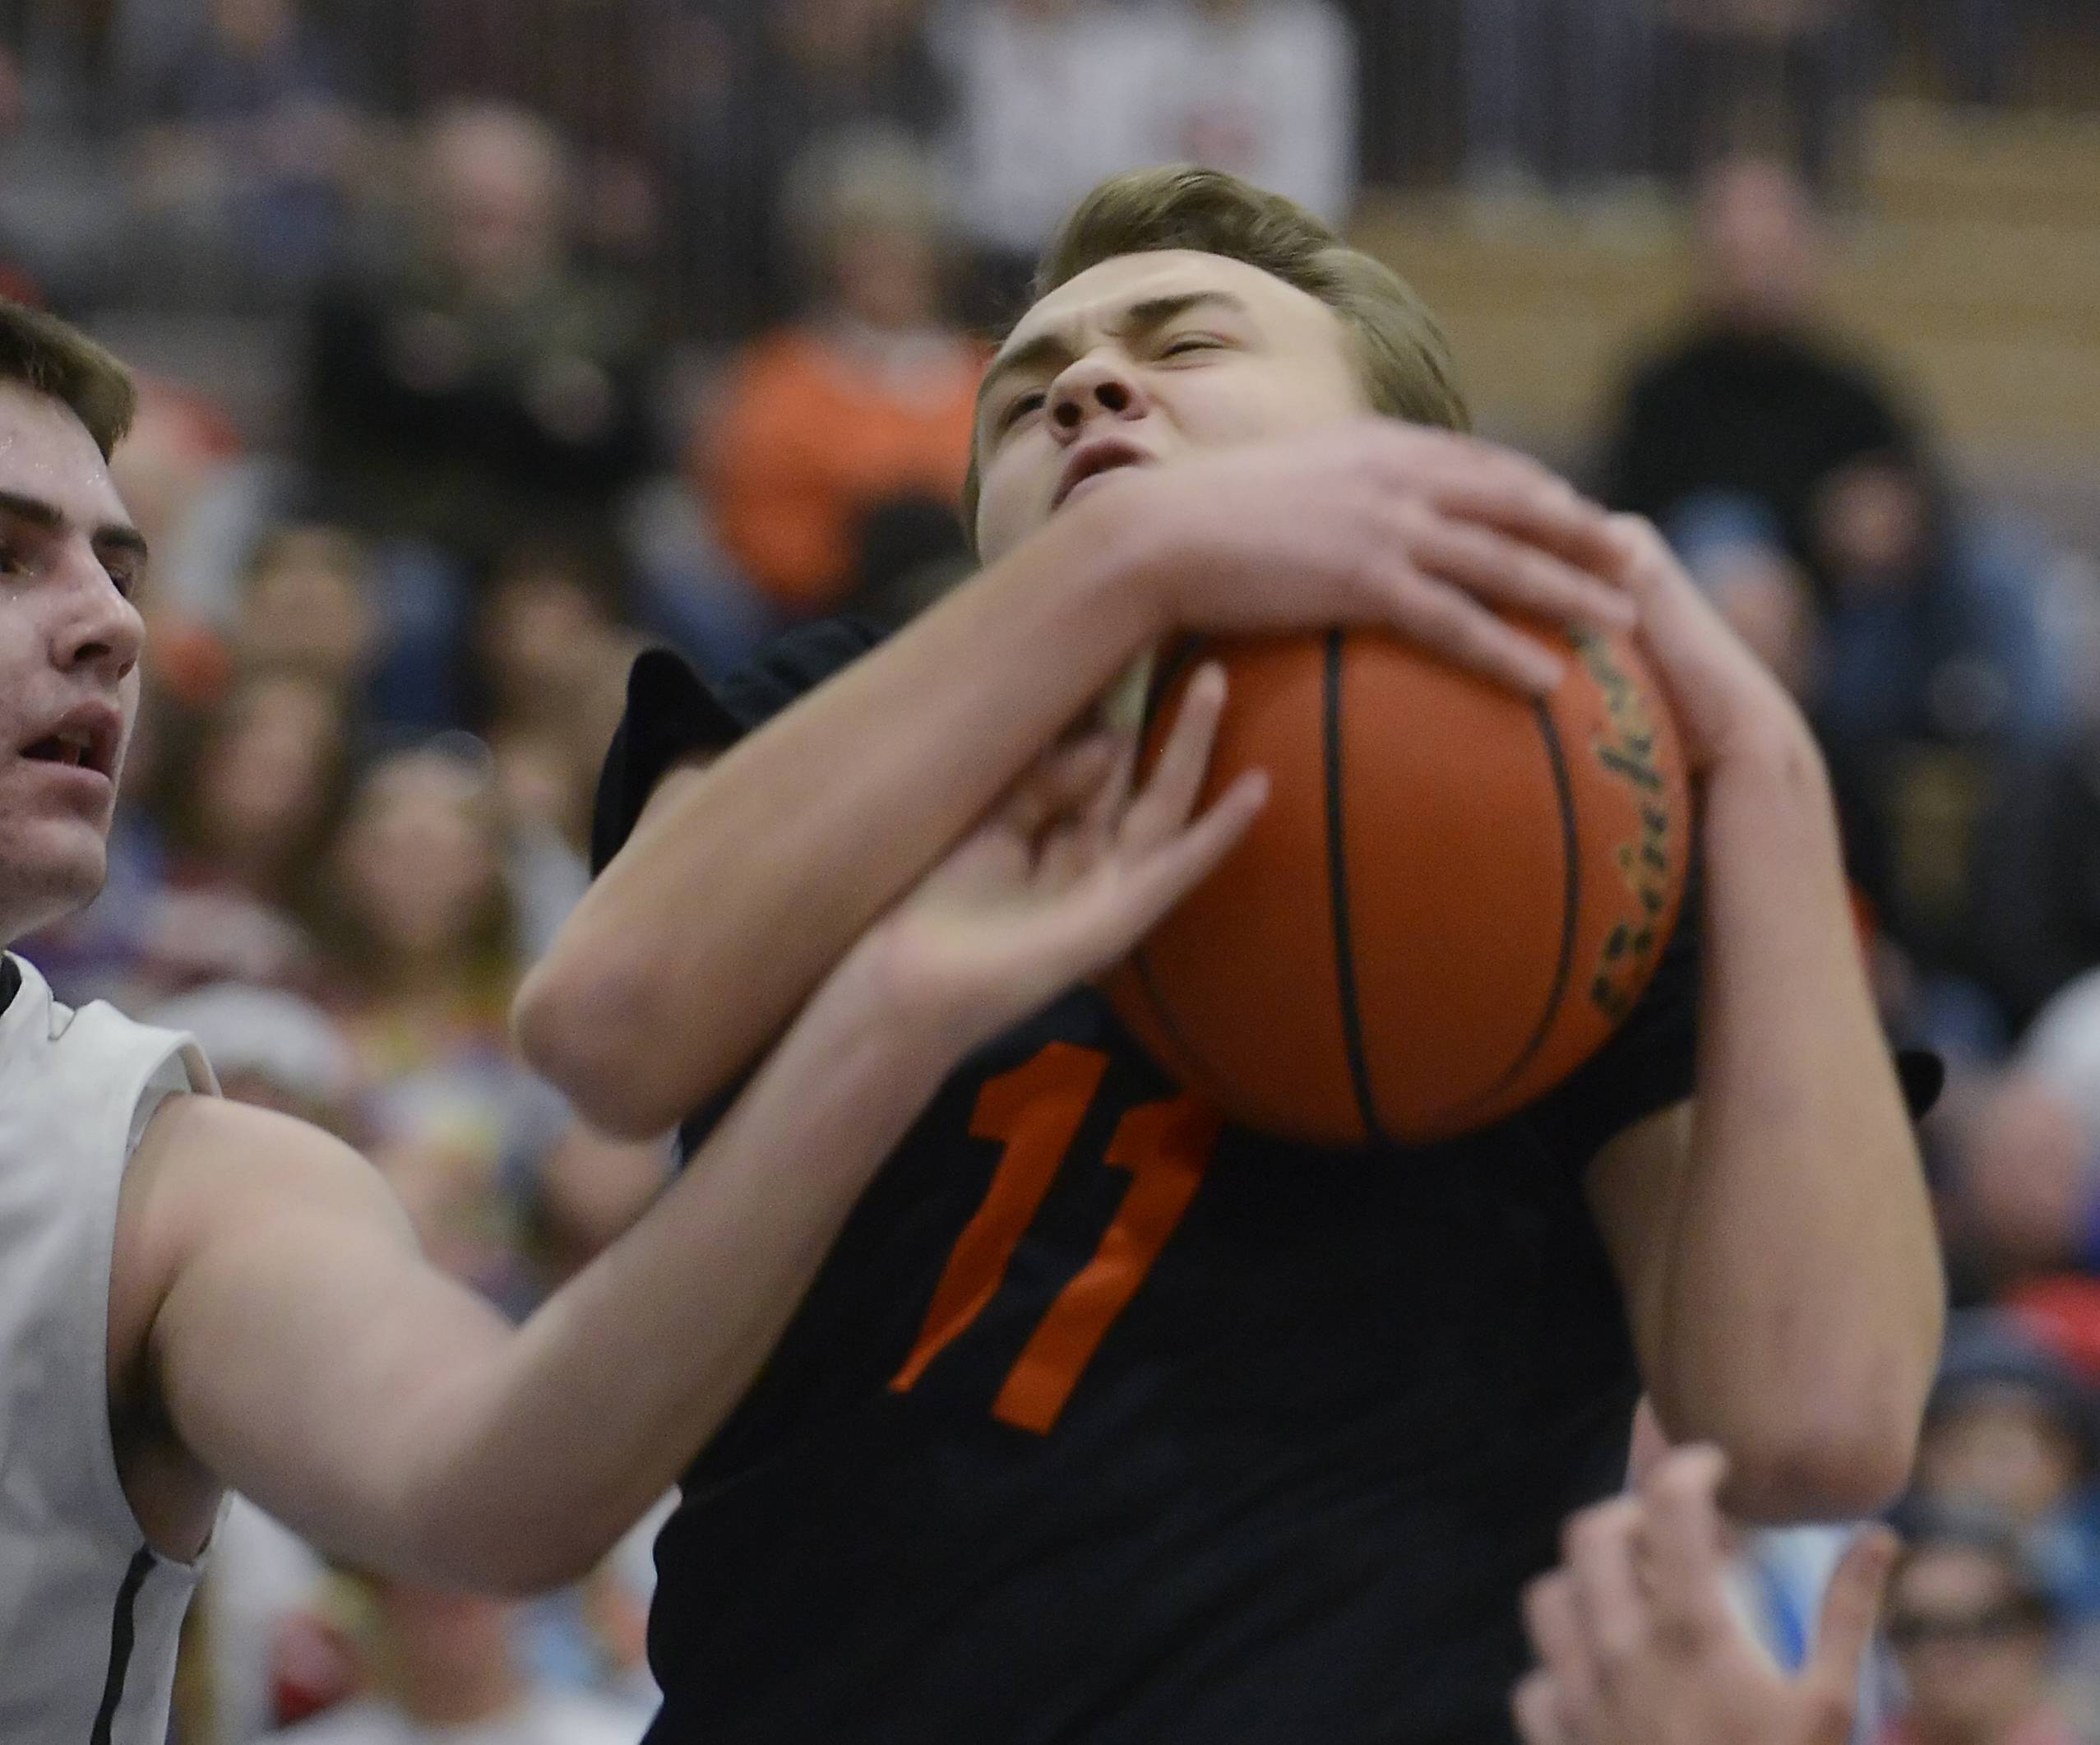 St. Charles East's Mick Vyzral grabs rebound against St. Charles North's Jack Callaghan Wednesday in the regional game at St. Charles North.